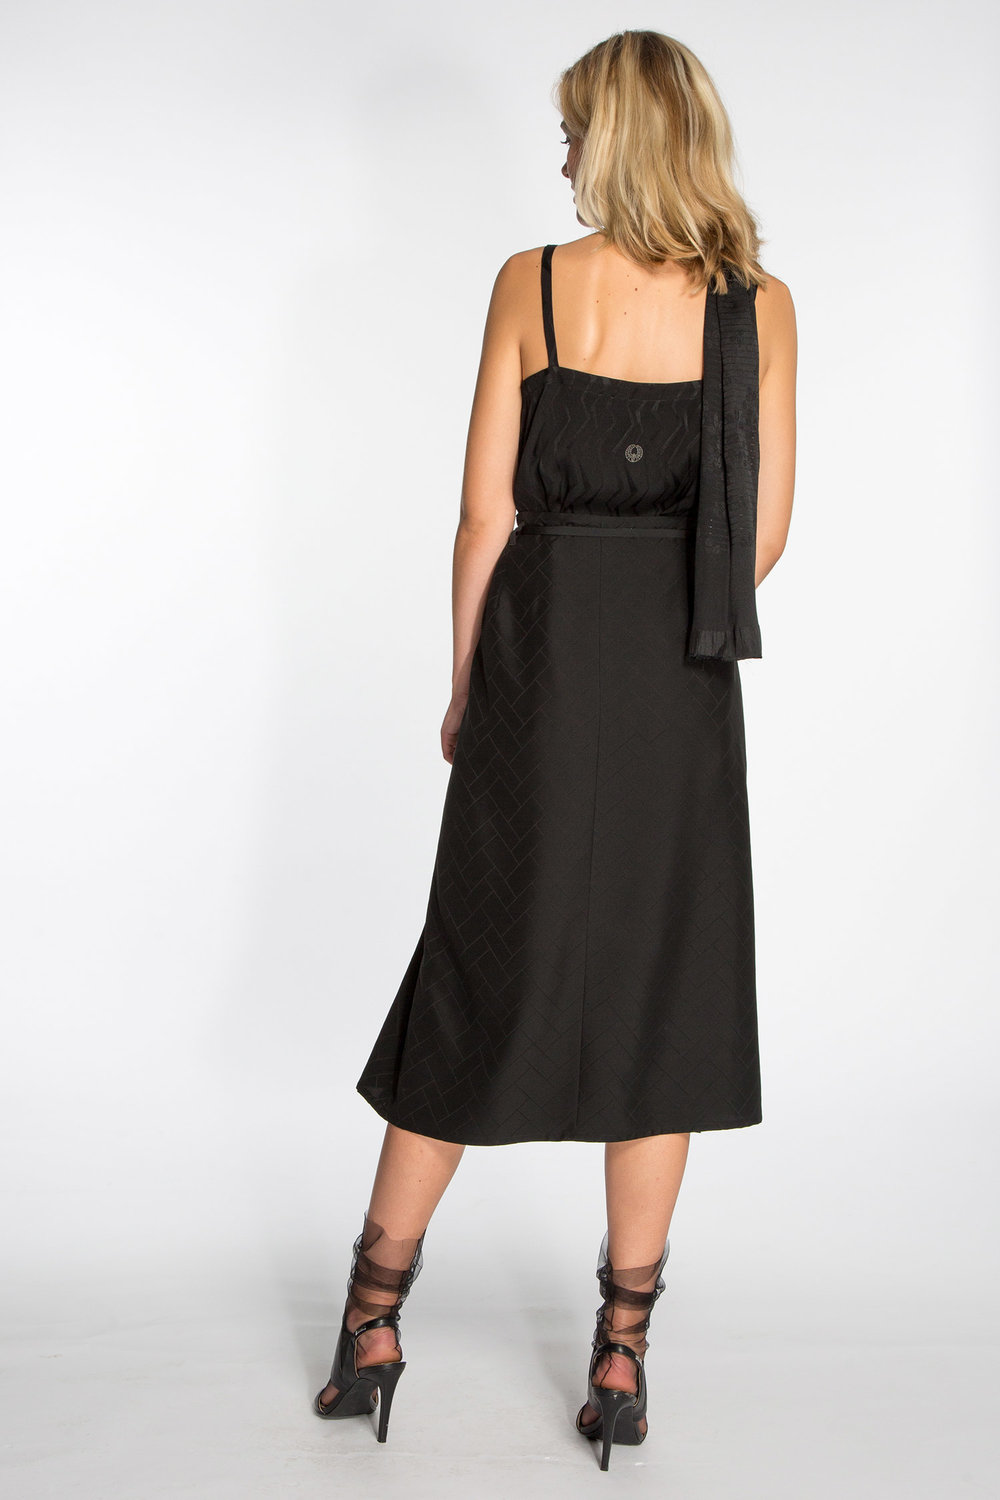 Look5-camisole-wrap-skirt-8-33.jpg